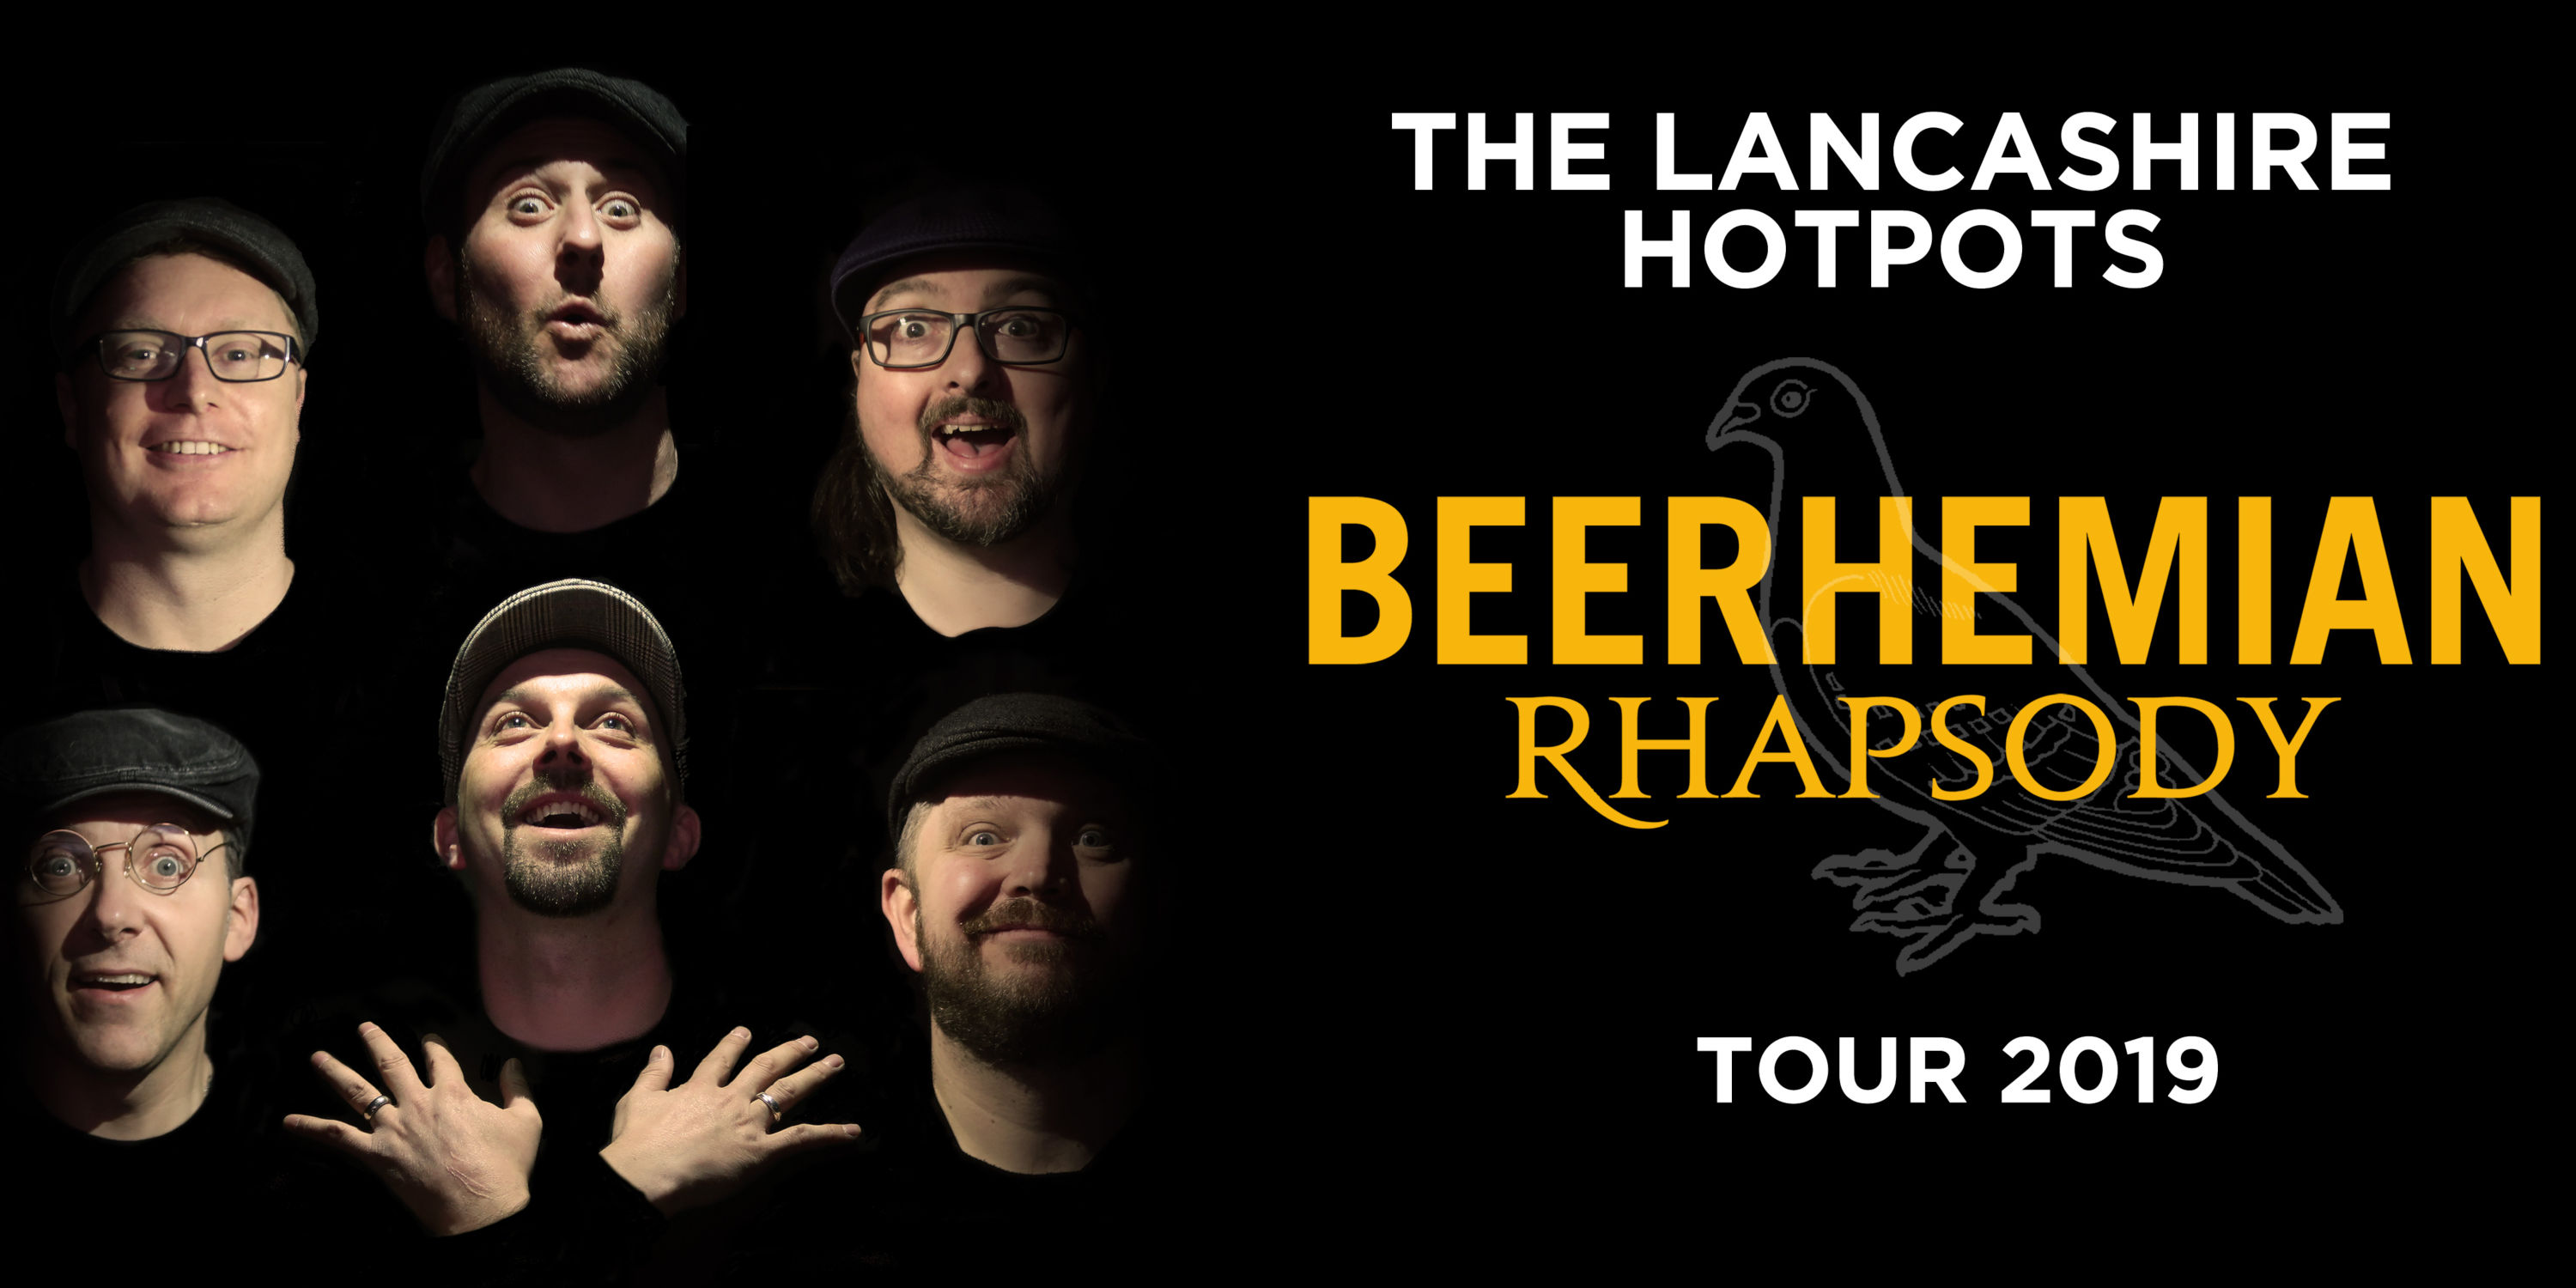 The Lancashire Hotpots Beerhemian Rhapsody Tour promotion